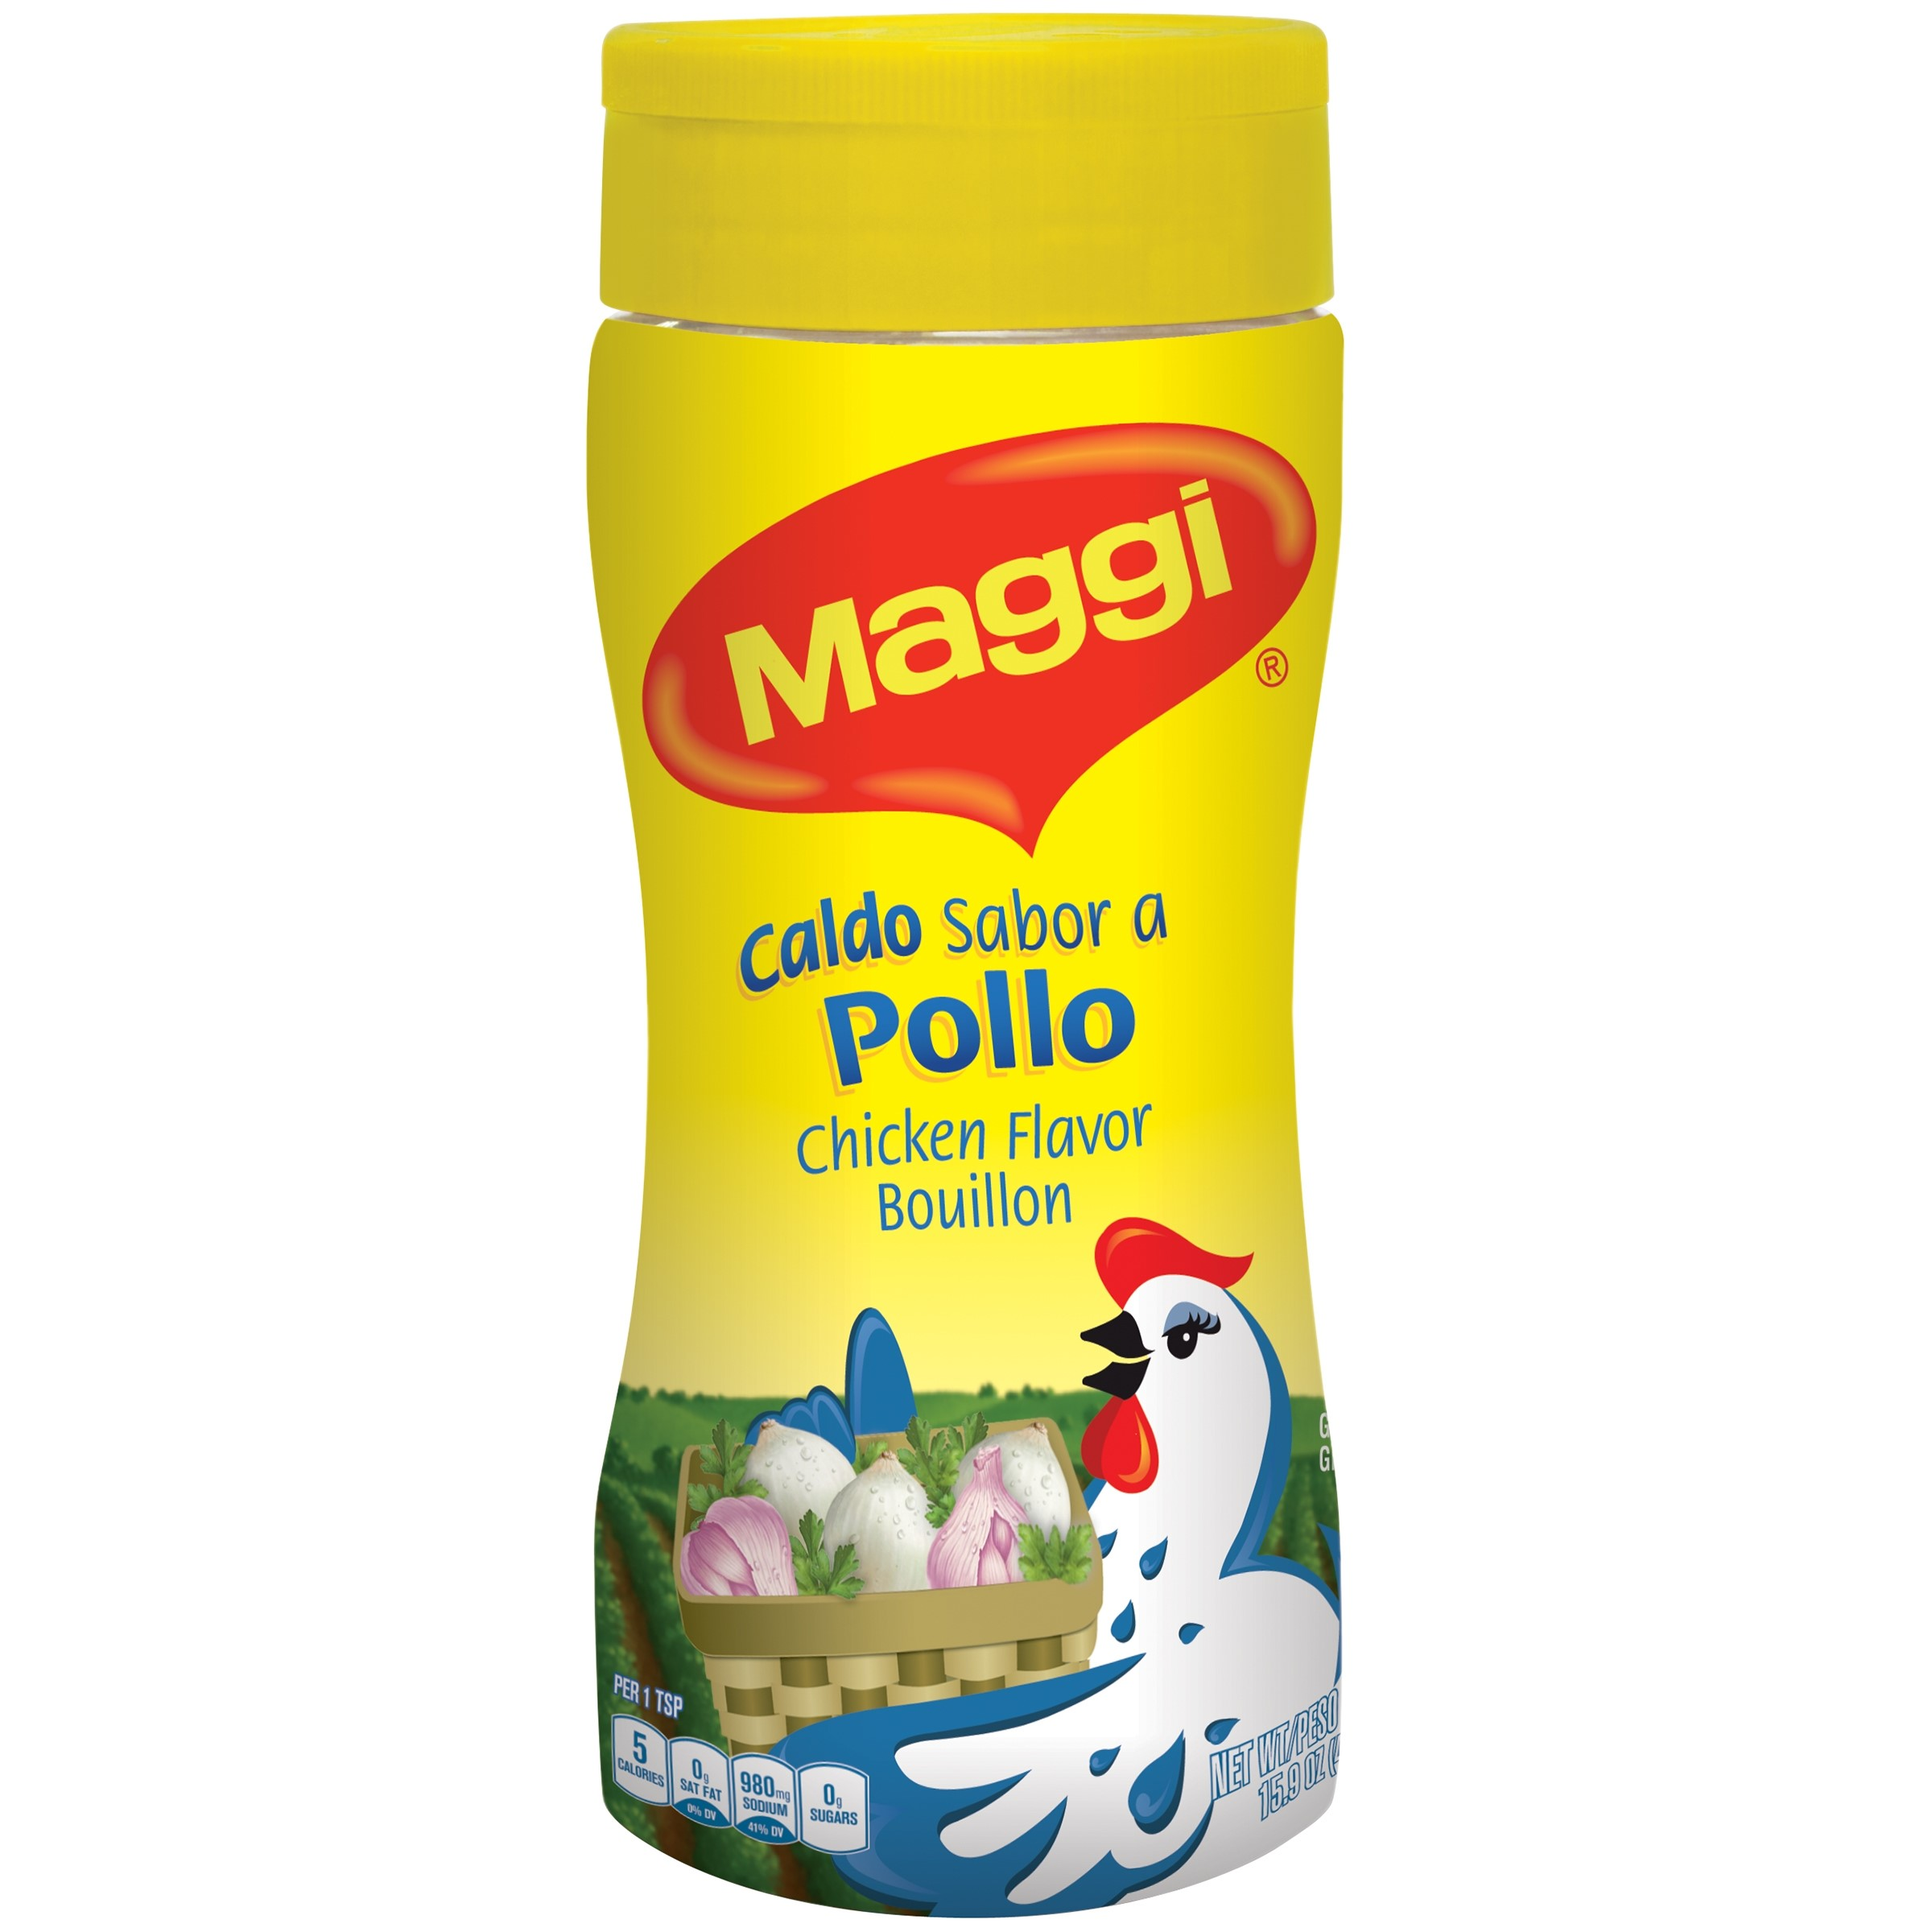 MAGGI Granulated Chicken Flavor Bouillon 15.9 oz. Jar